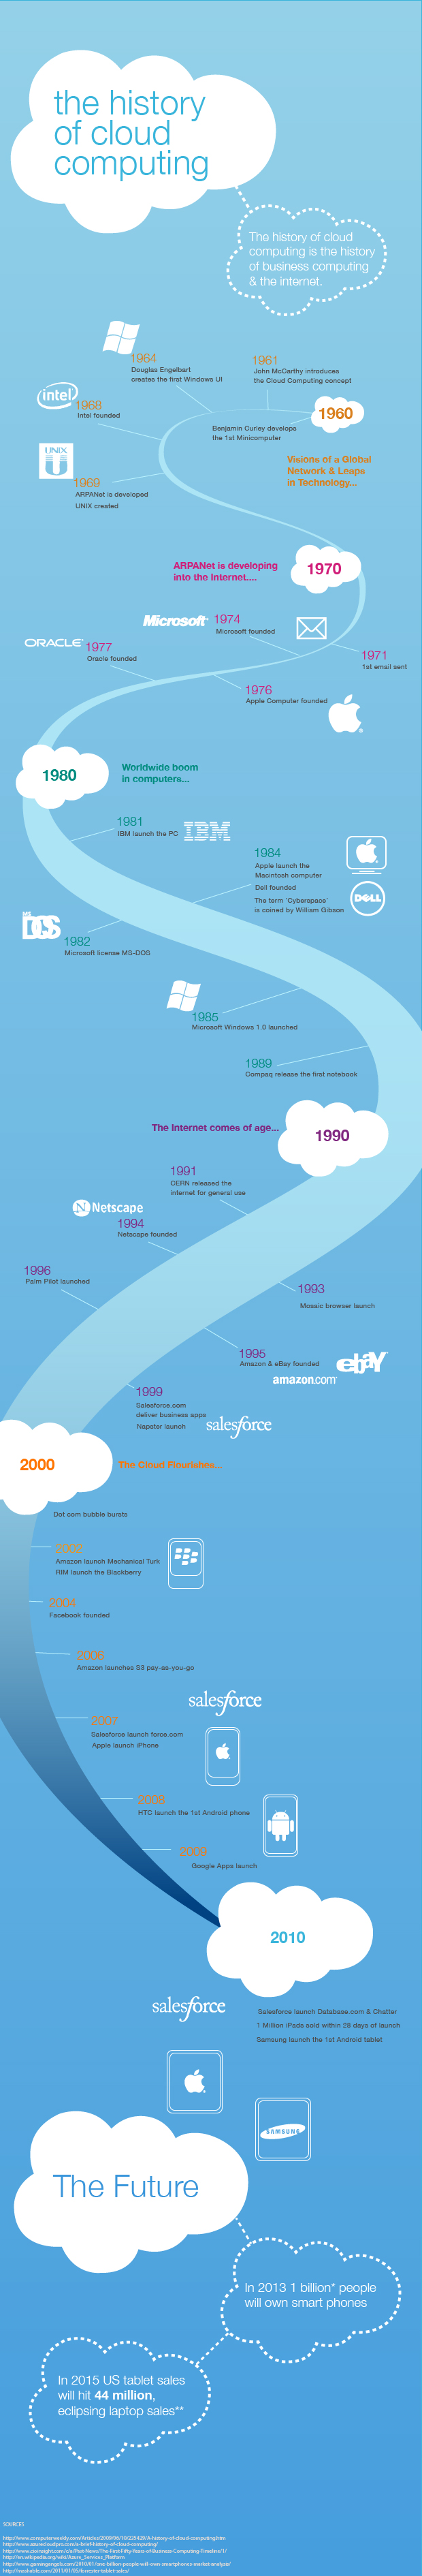 history-of-cloud-computing-infographic